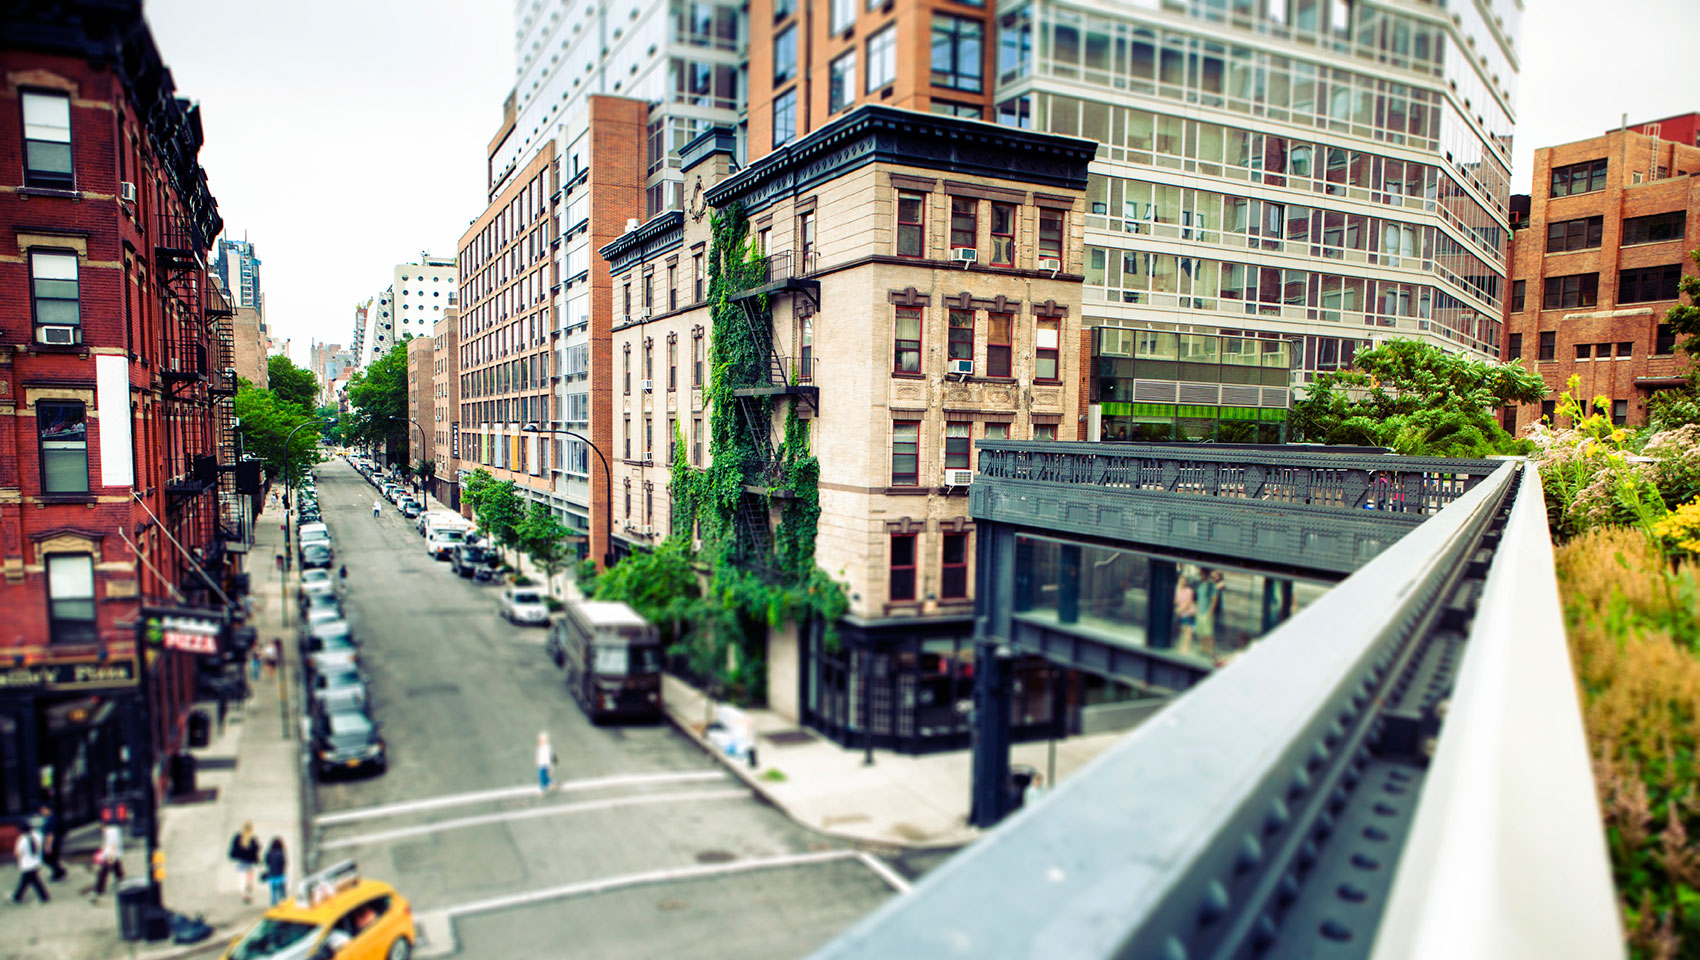 city buildings with green vines seen from High Line